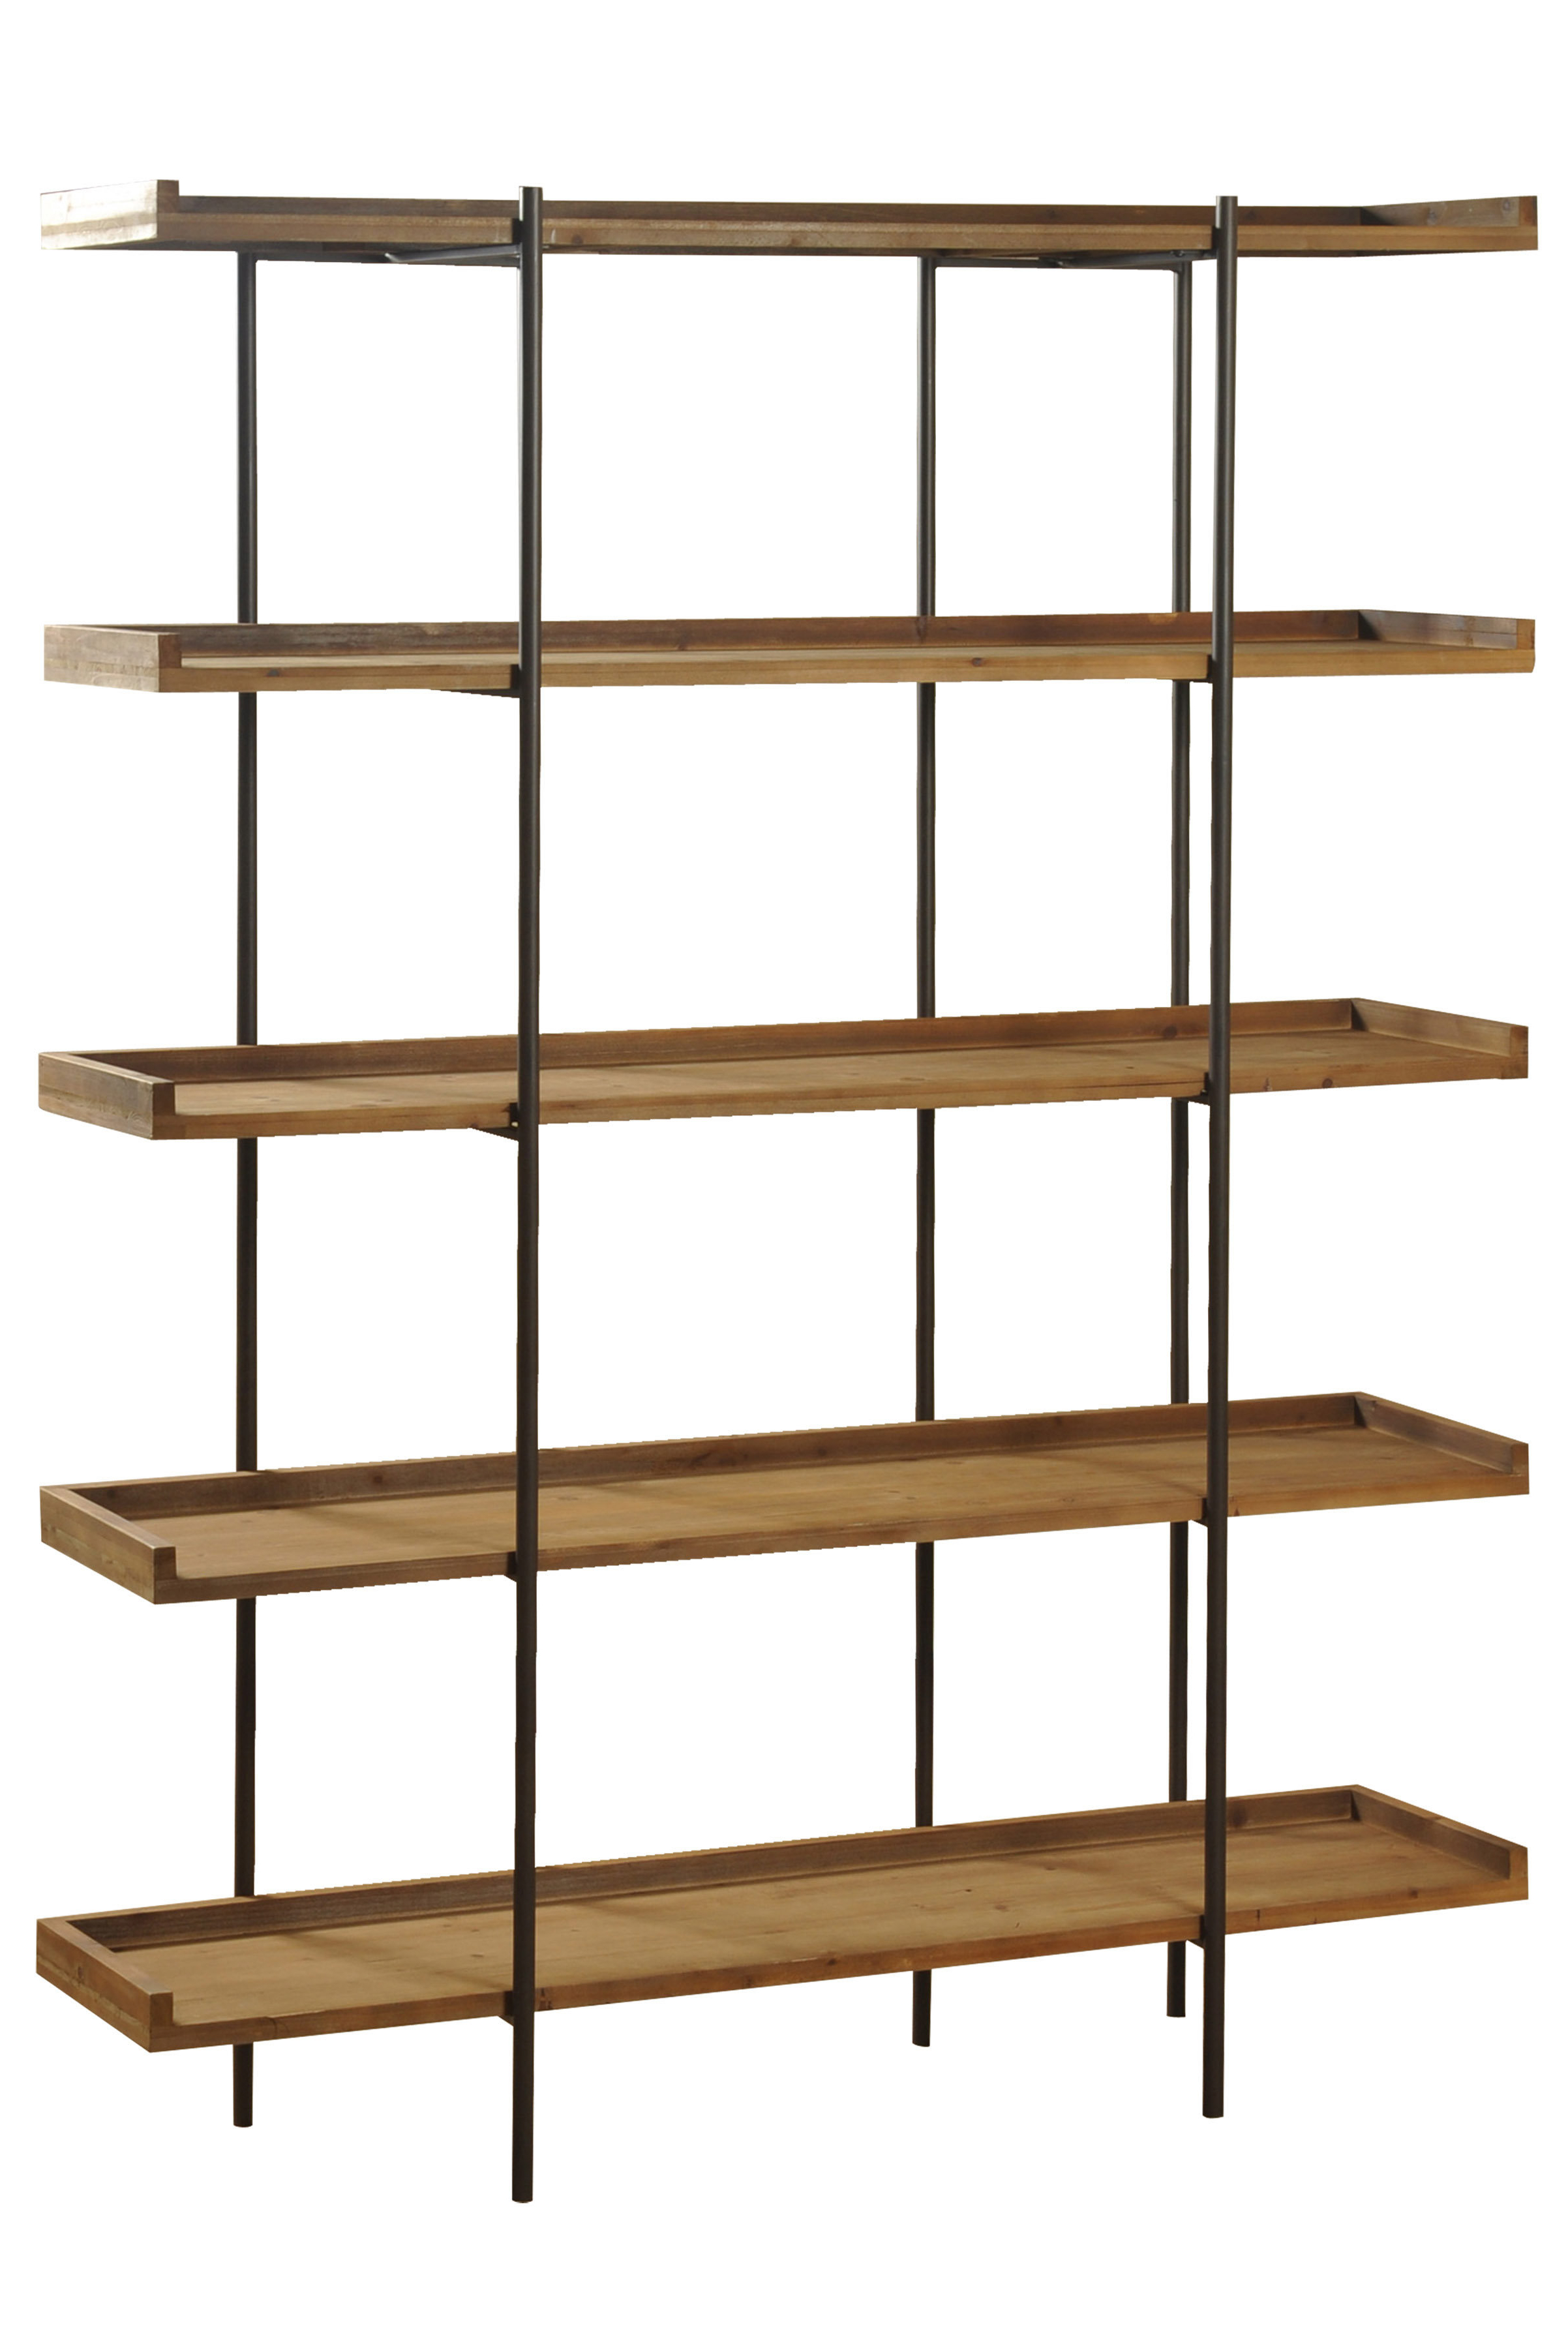 Beckett Etagere Bookcases Pertaining To Most Recent Wanda Etagere Bookcase (View 13 of 20)